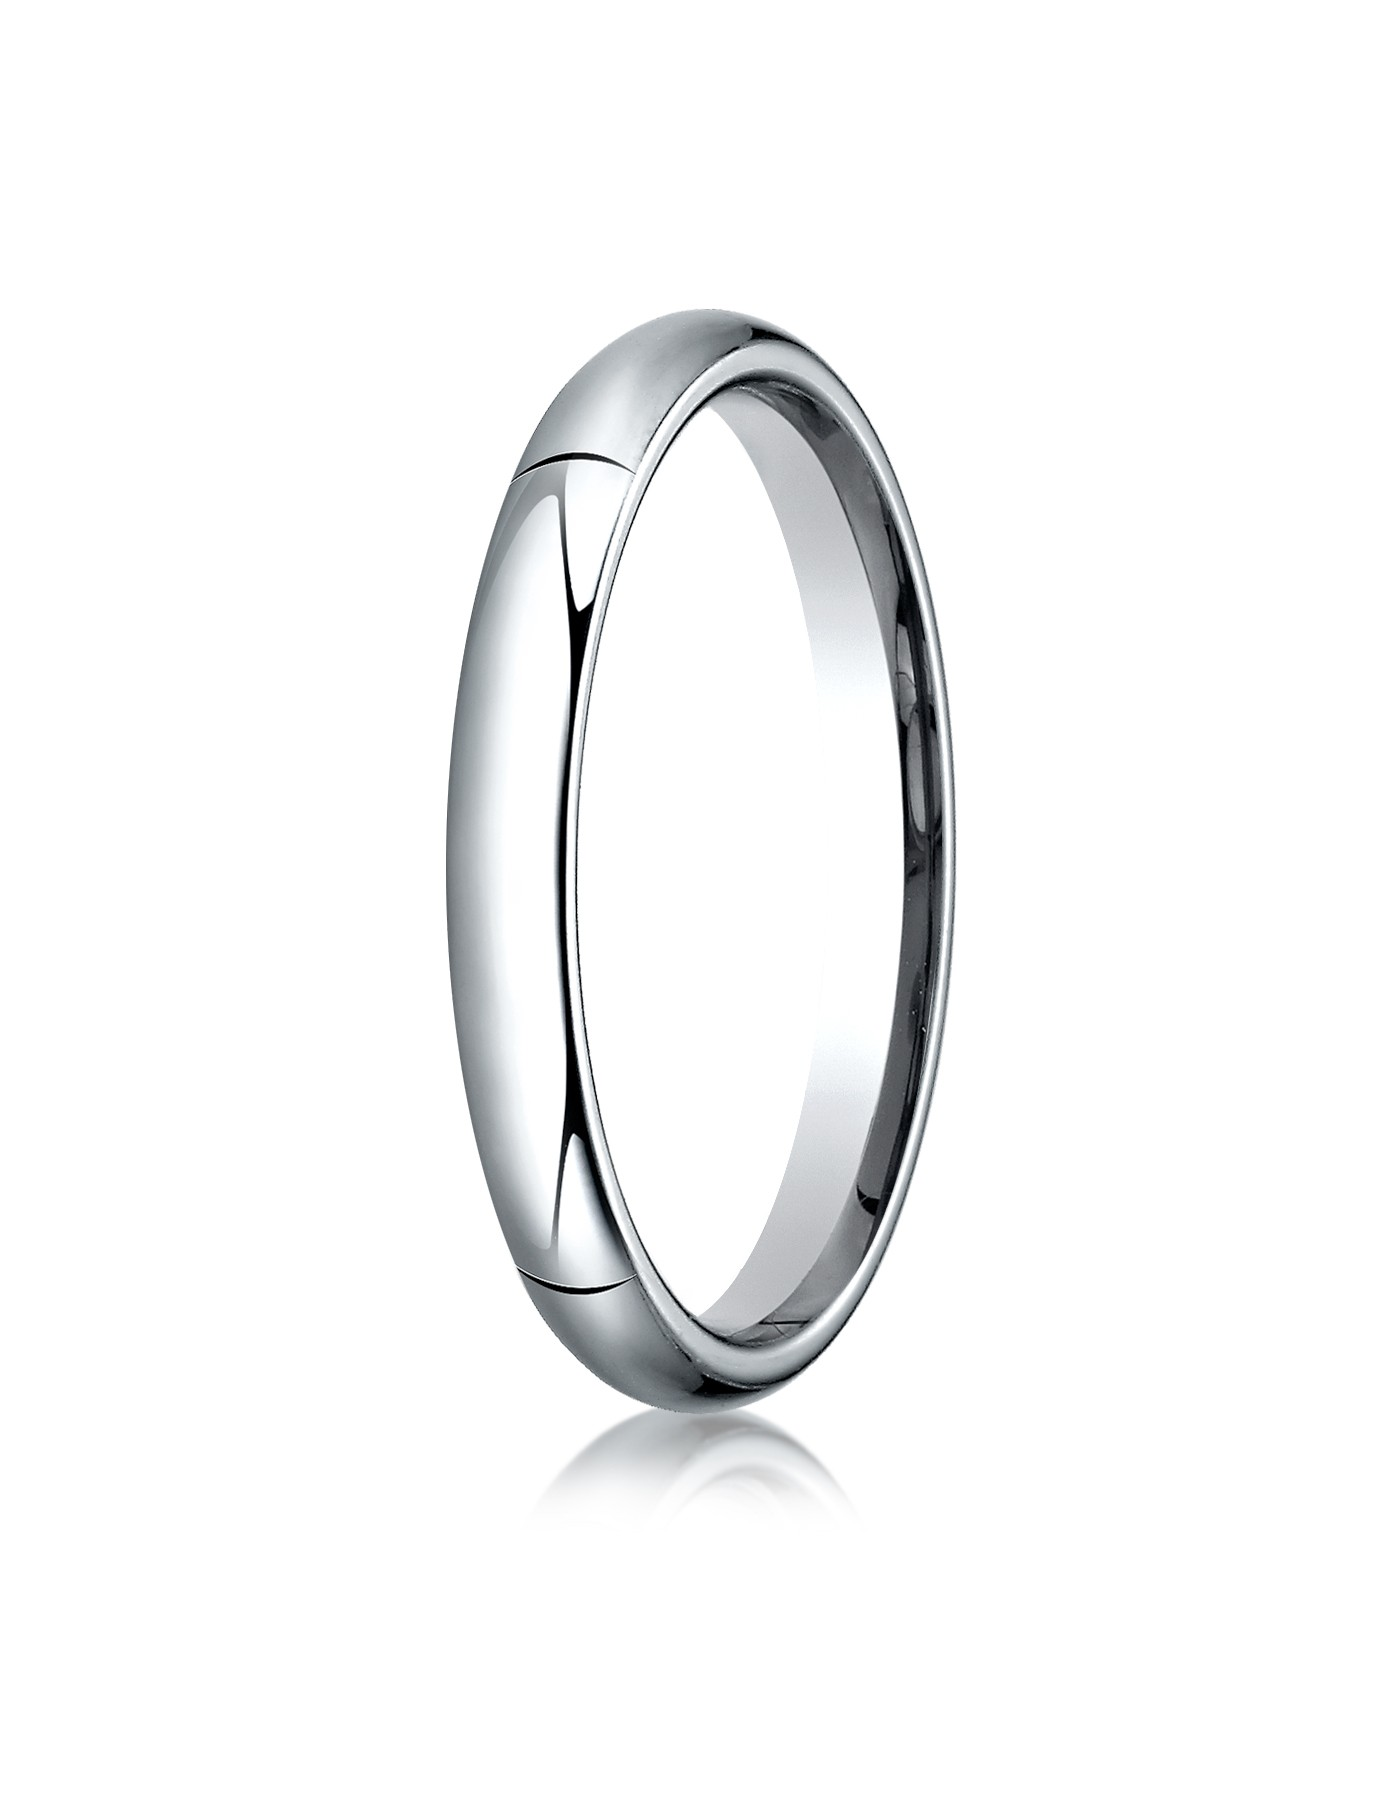 14k White Gold 3mm High Dome Comfort-fit Ring